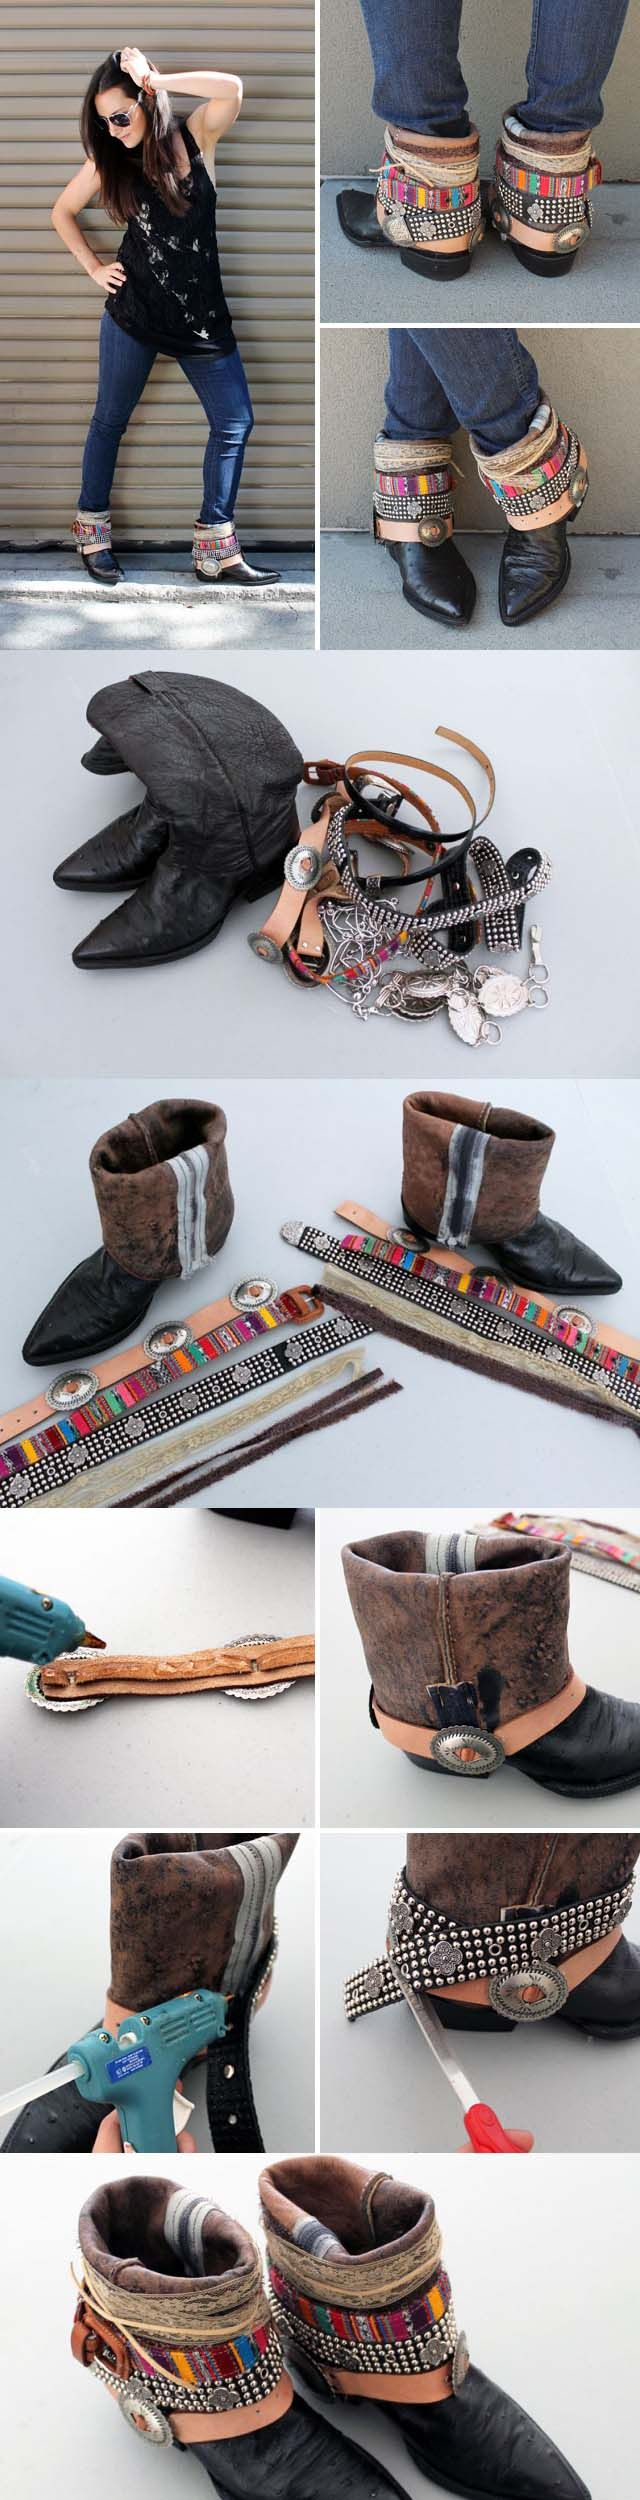 DIY Bohemian Boots|Add a Little Flair to Old Boots! Yessssss please :)